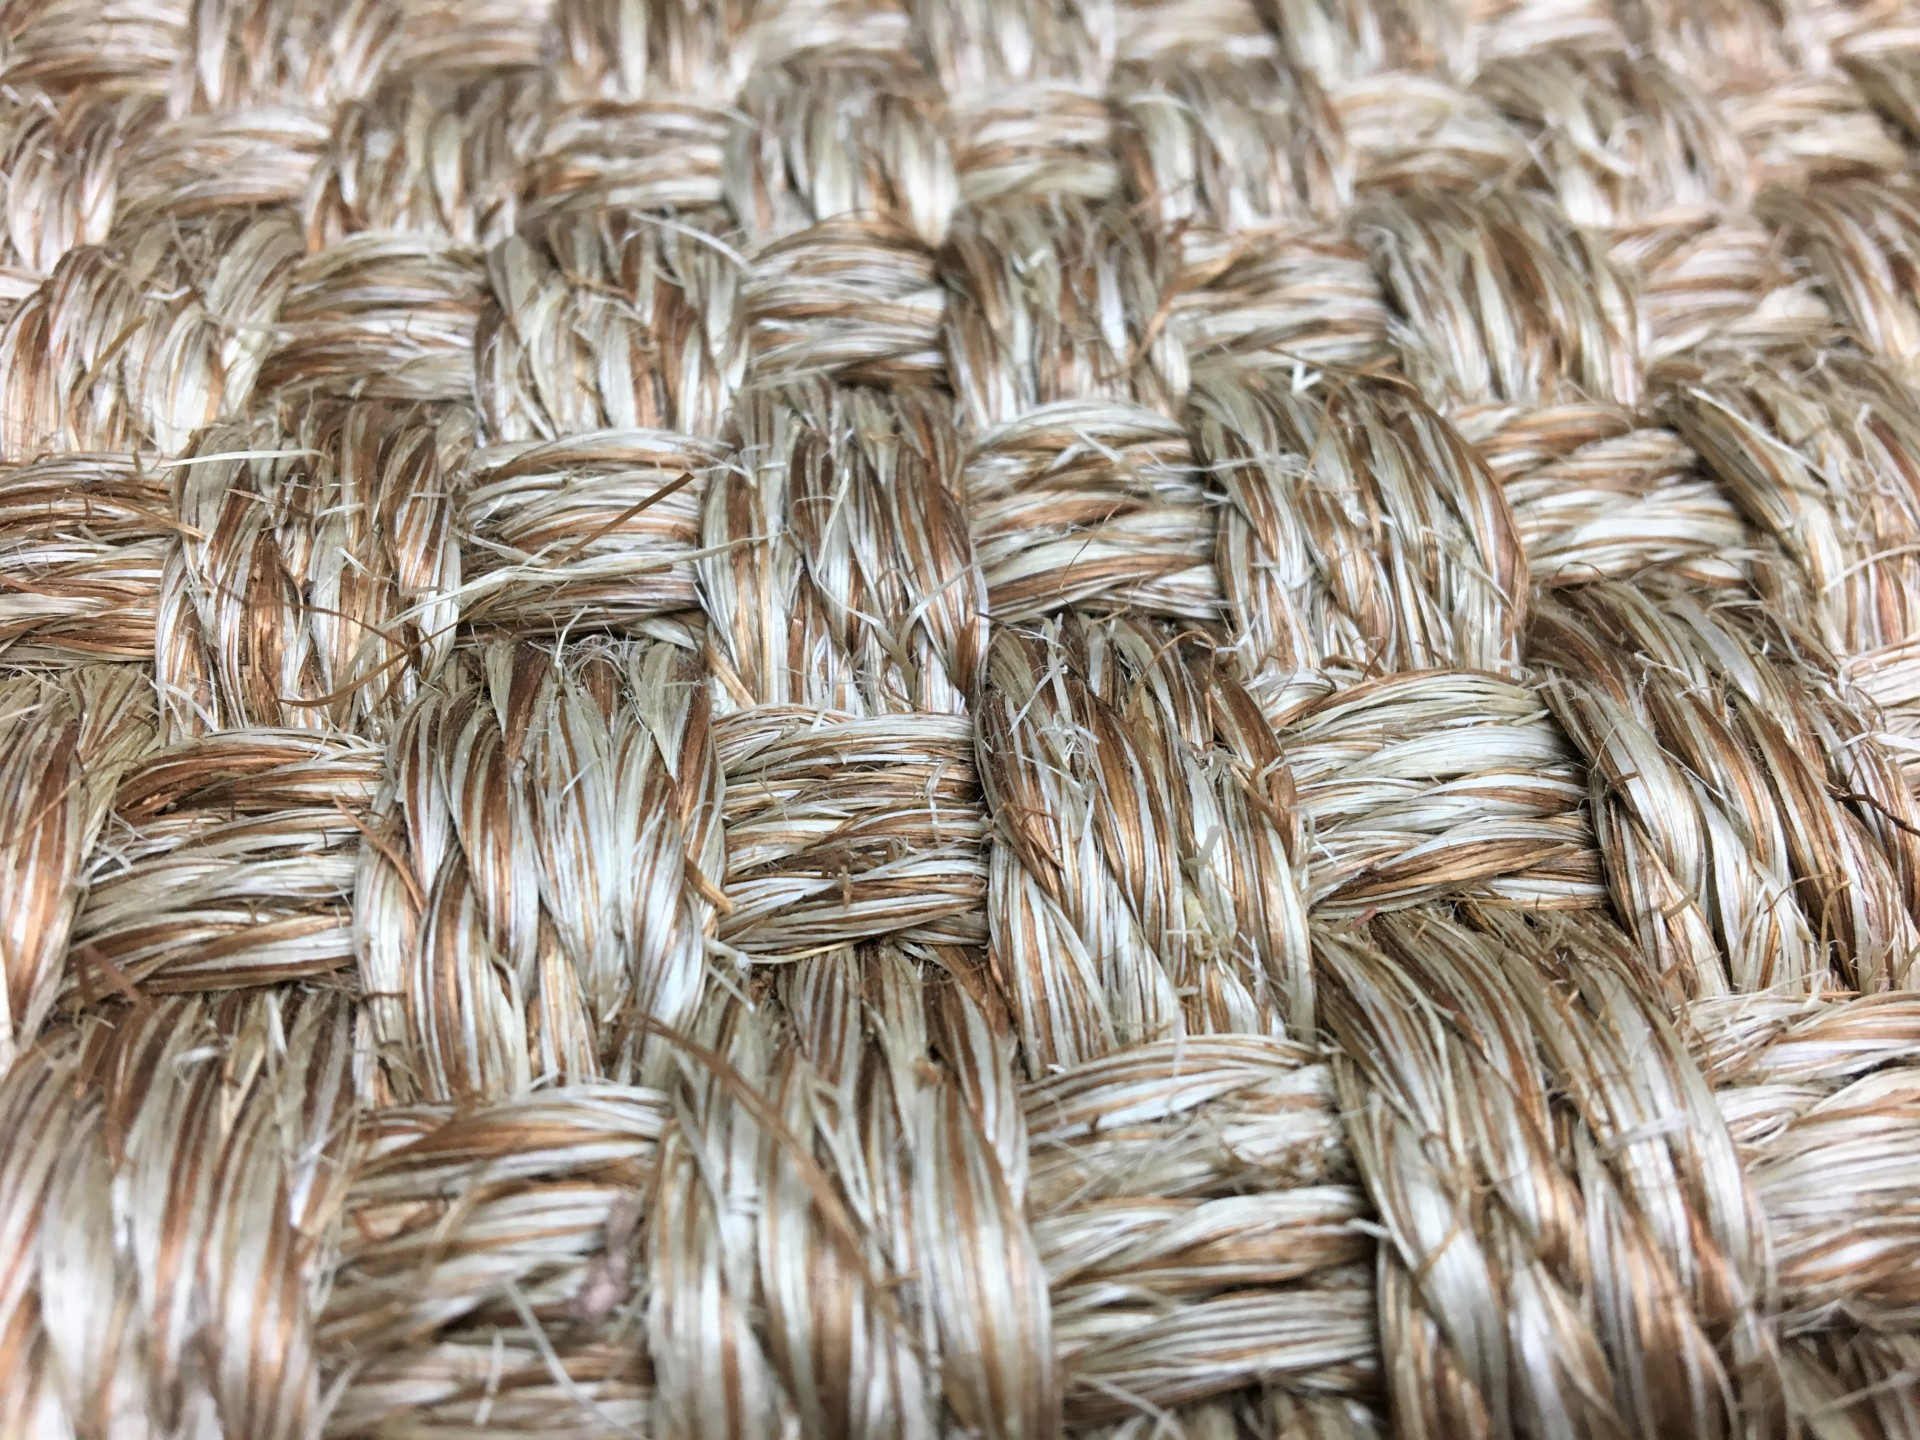 Carpet, area rugs, natural fibers, carpeting, rug, wall to wall carpet, plush, thick, comfortable, soft, clean carpet, DMI, design materials, design materials inc, design materials incorporated